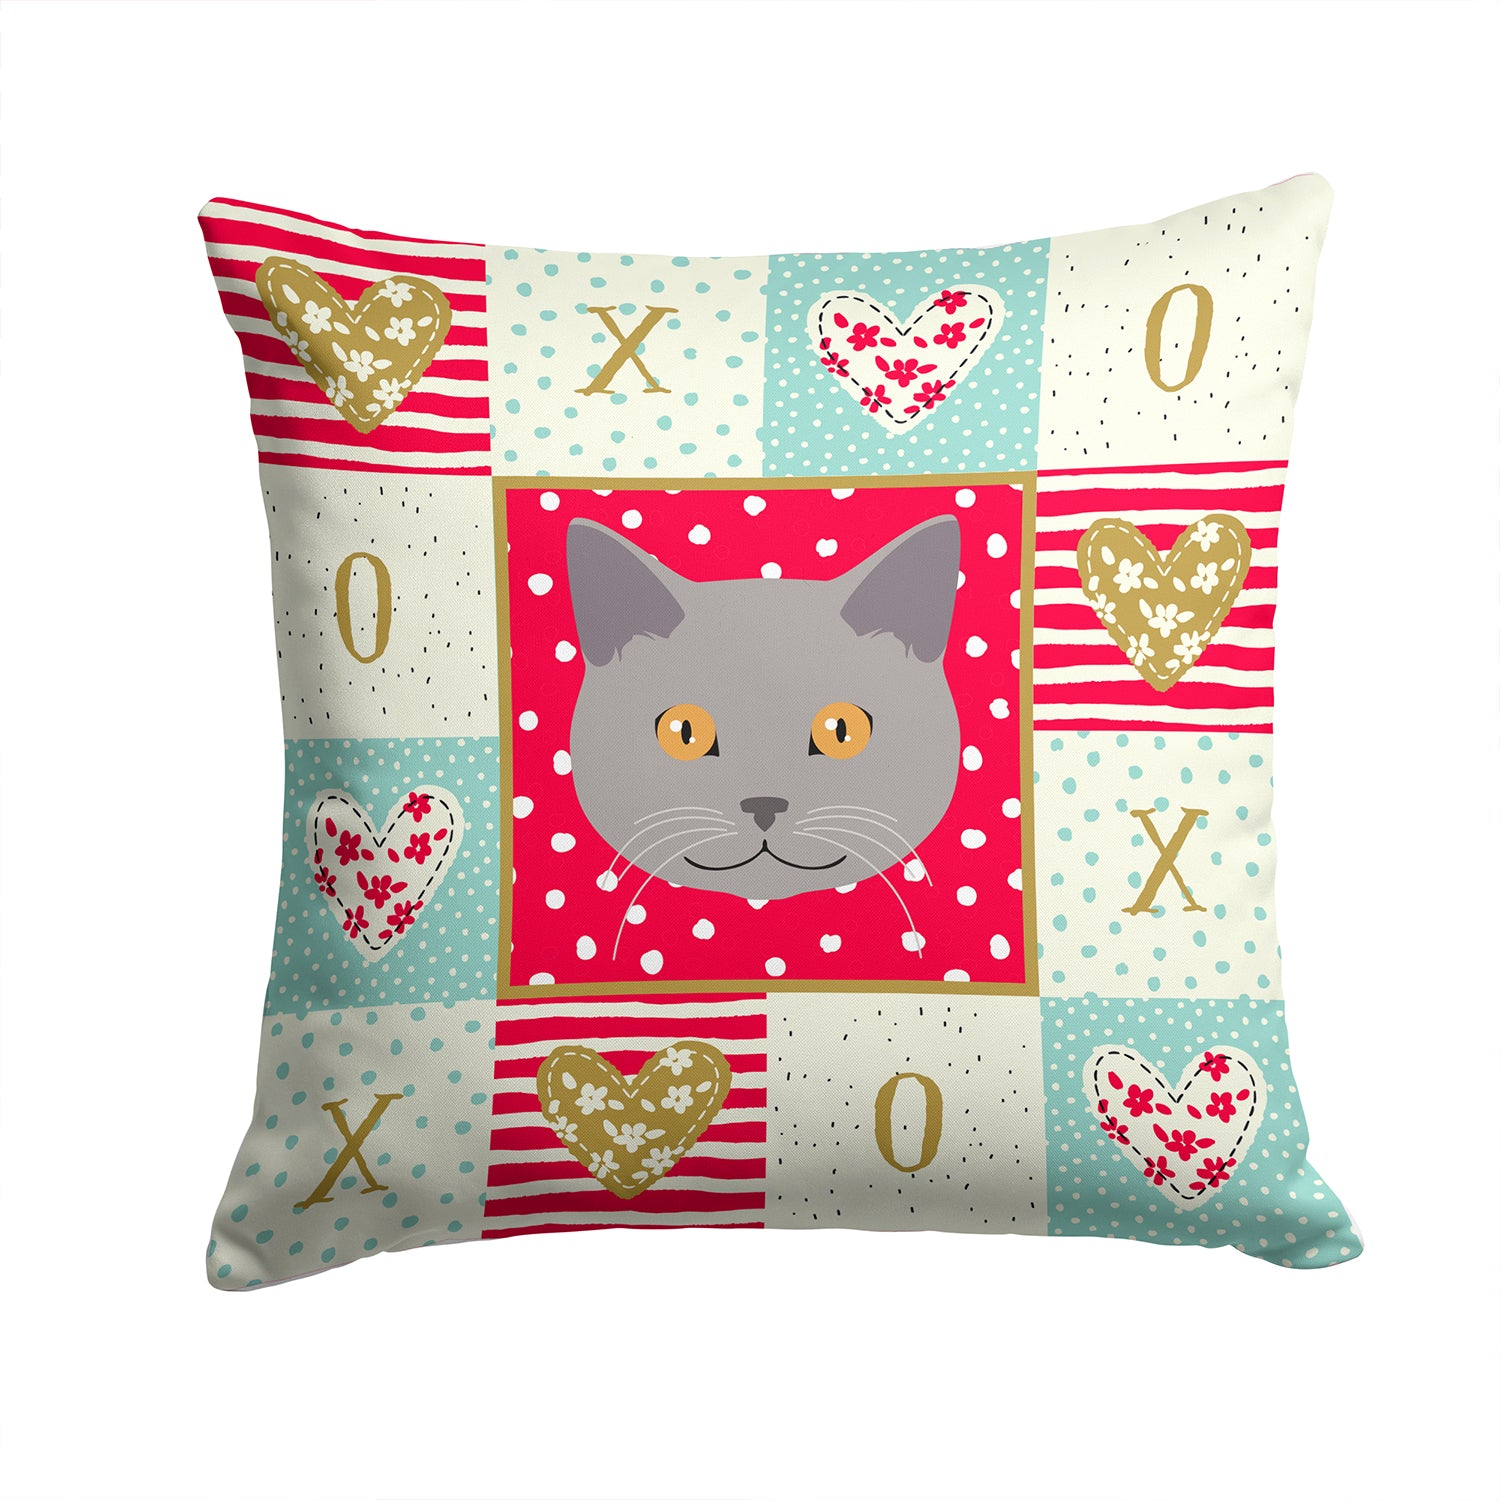 Chartreux Cat Love Fabric Decorative Pillow CK5100PW1414 by Caroline's Treasures